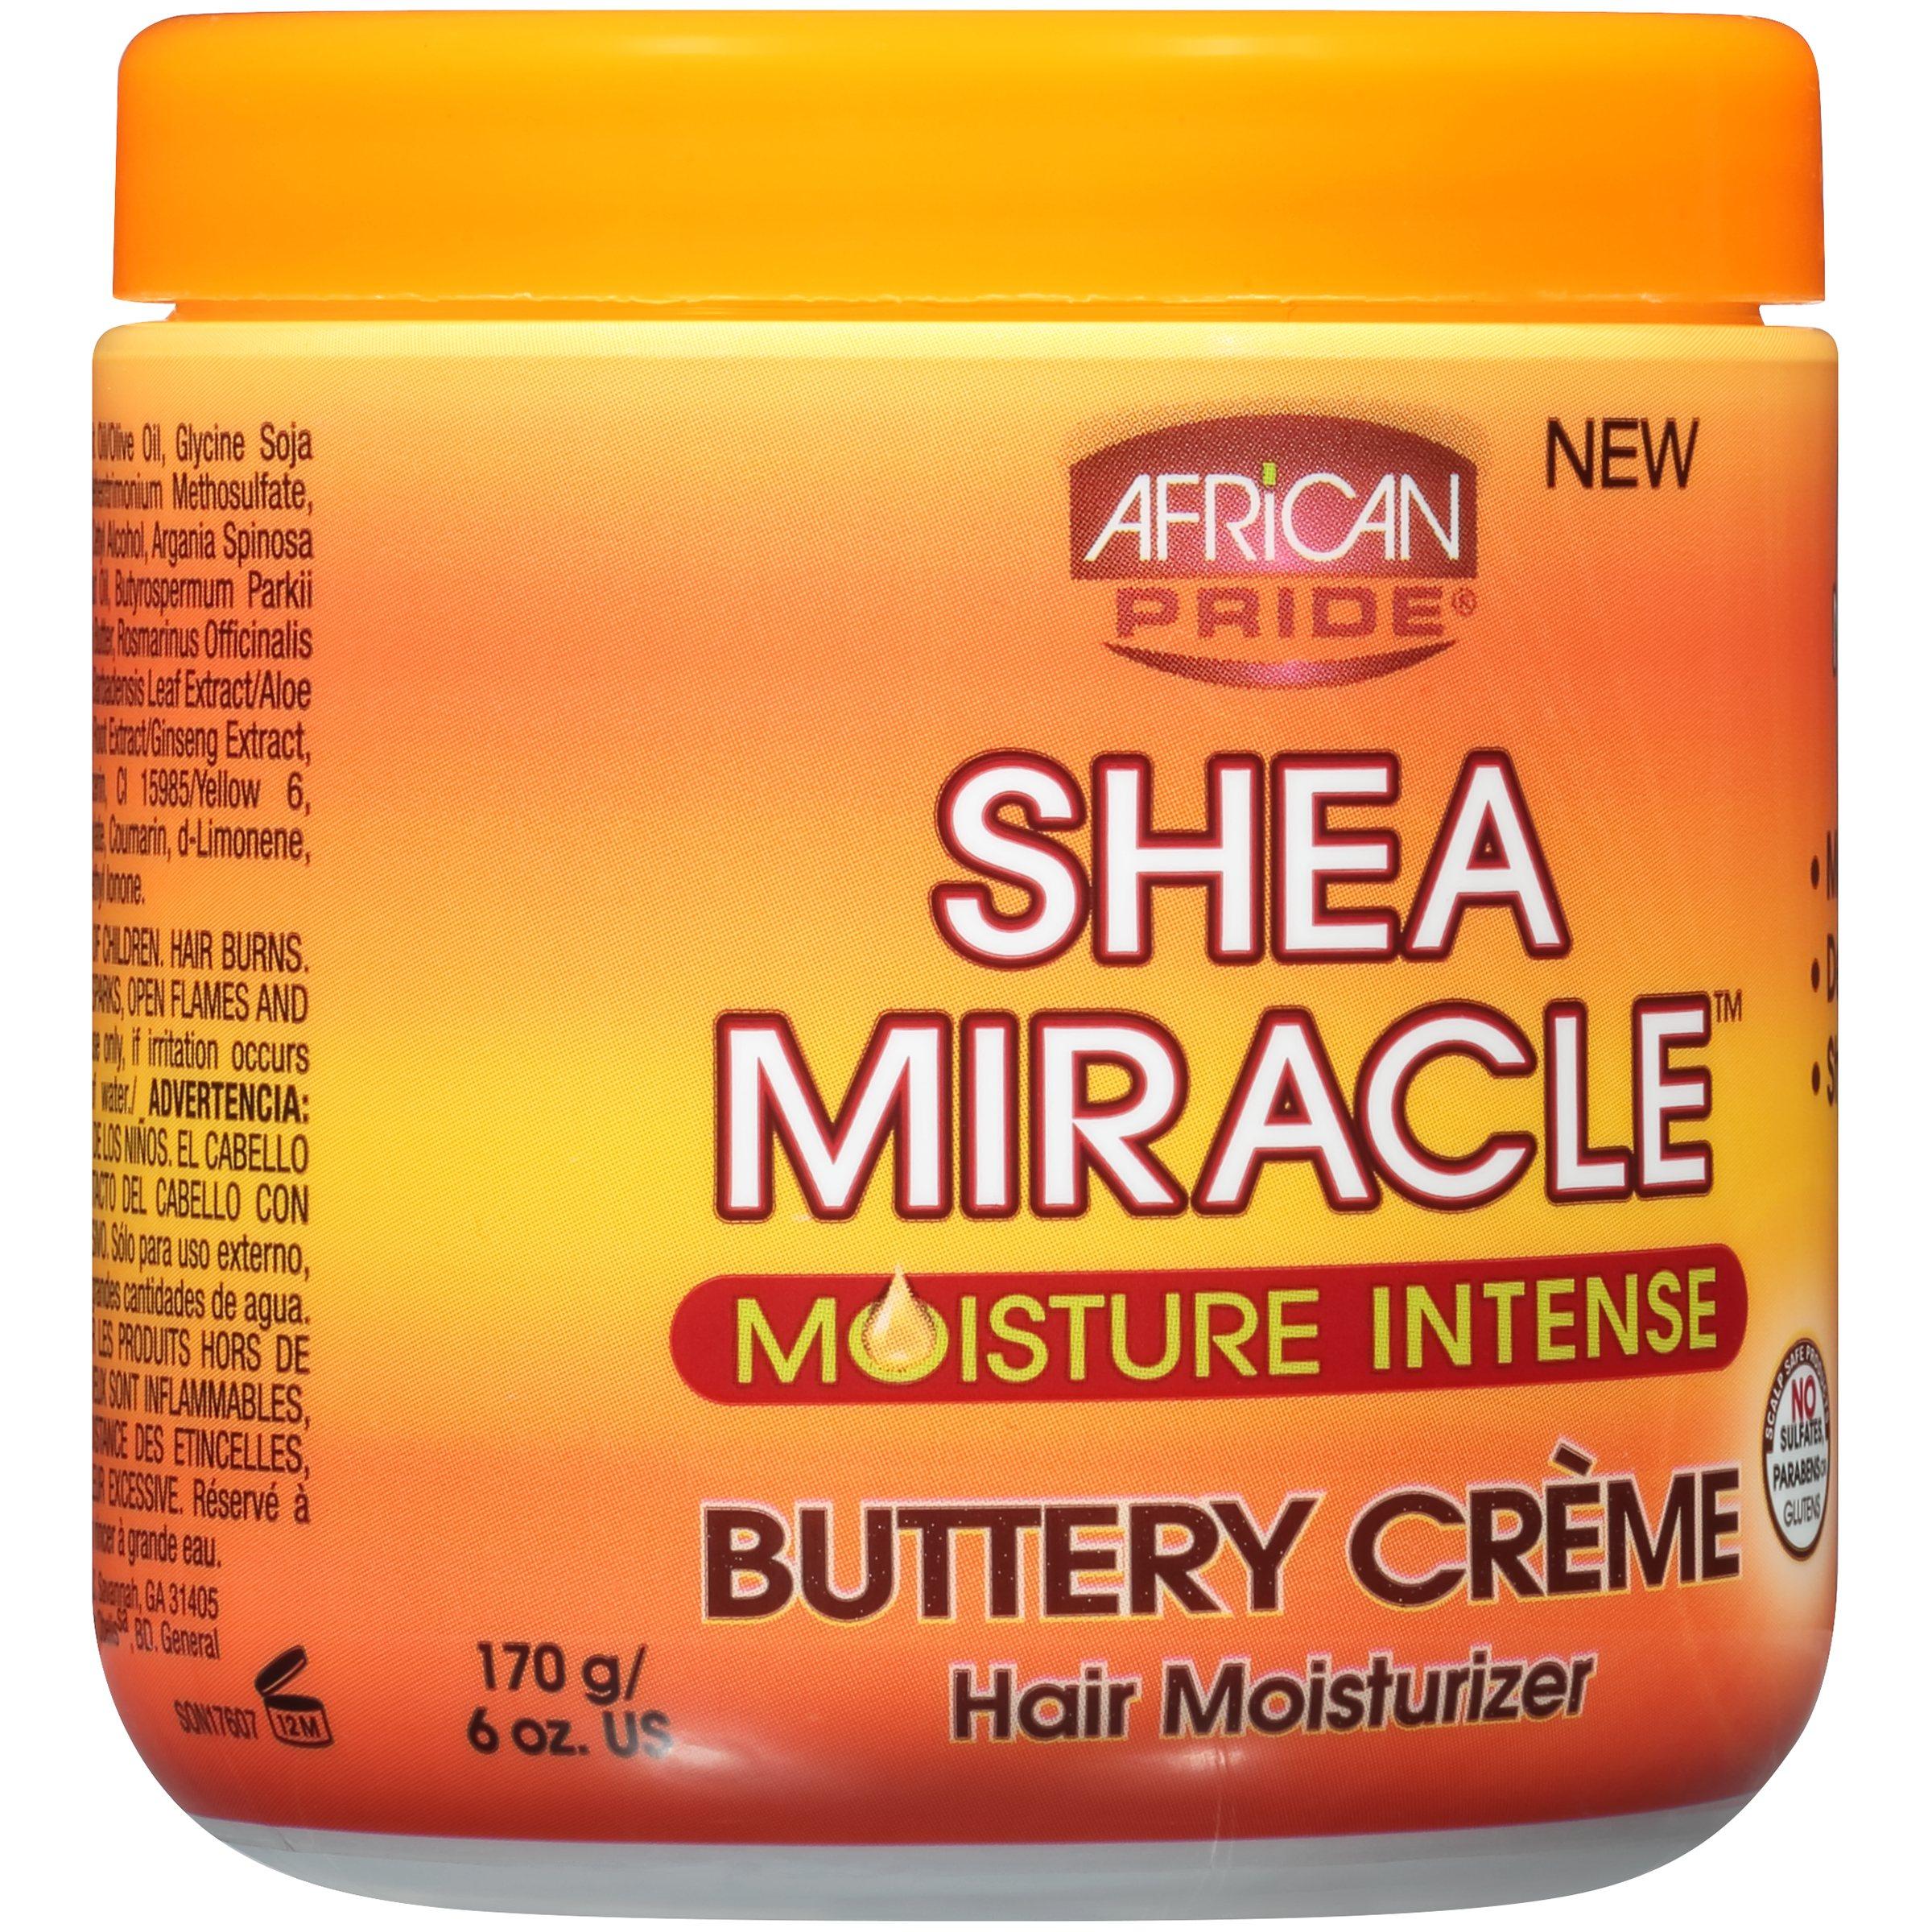 African Pride® Shea Miracle™ Moisture Intense Buttery Creme Hair Moisturizer 6 oz. Jar